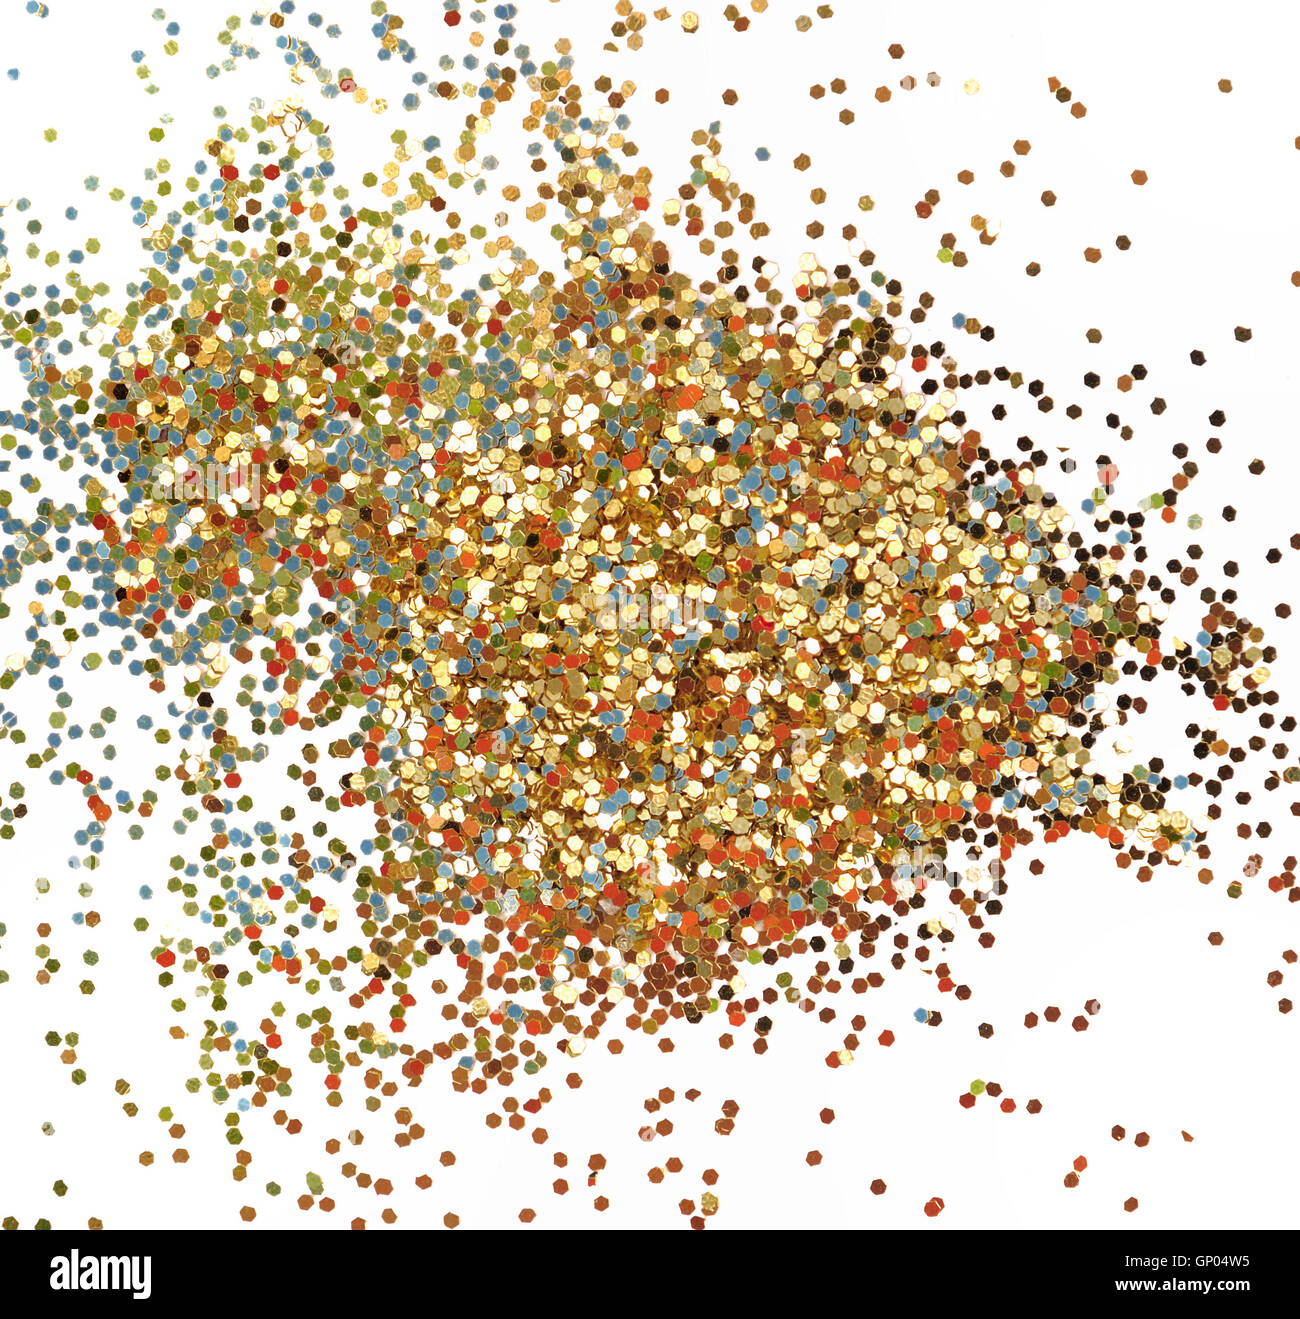 golden glitters scattered on white background - Stock Image